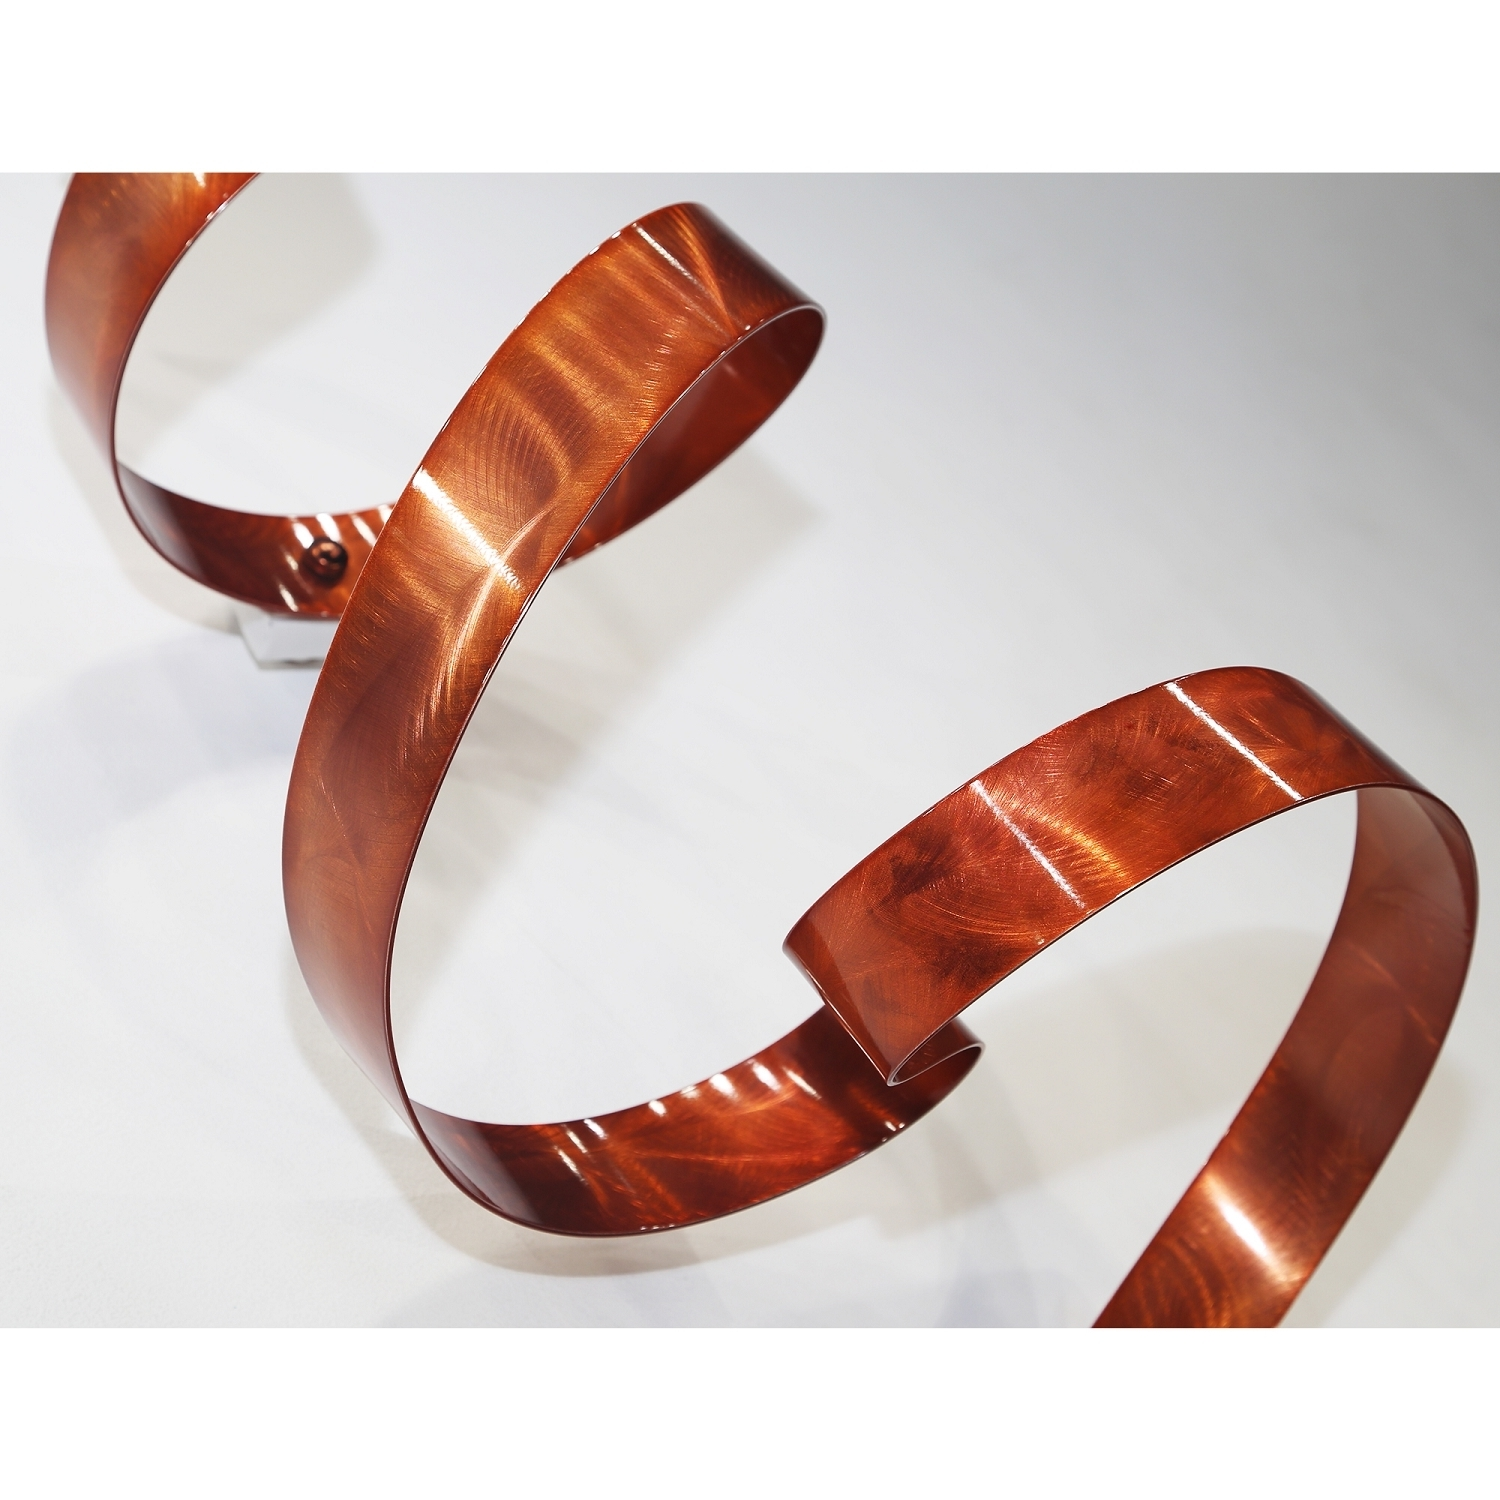 Wall Art Copper Pertaining To Most Up To Date Copper Wall Art Home Decor (View 13 of 15)